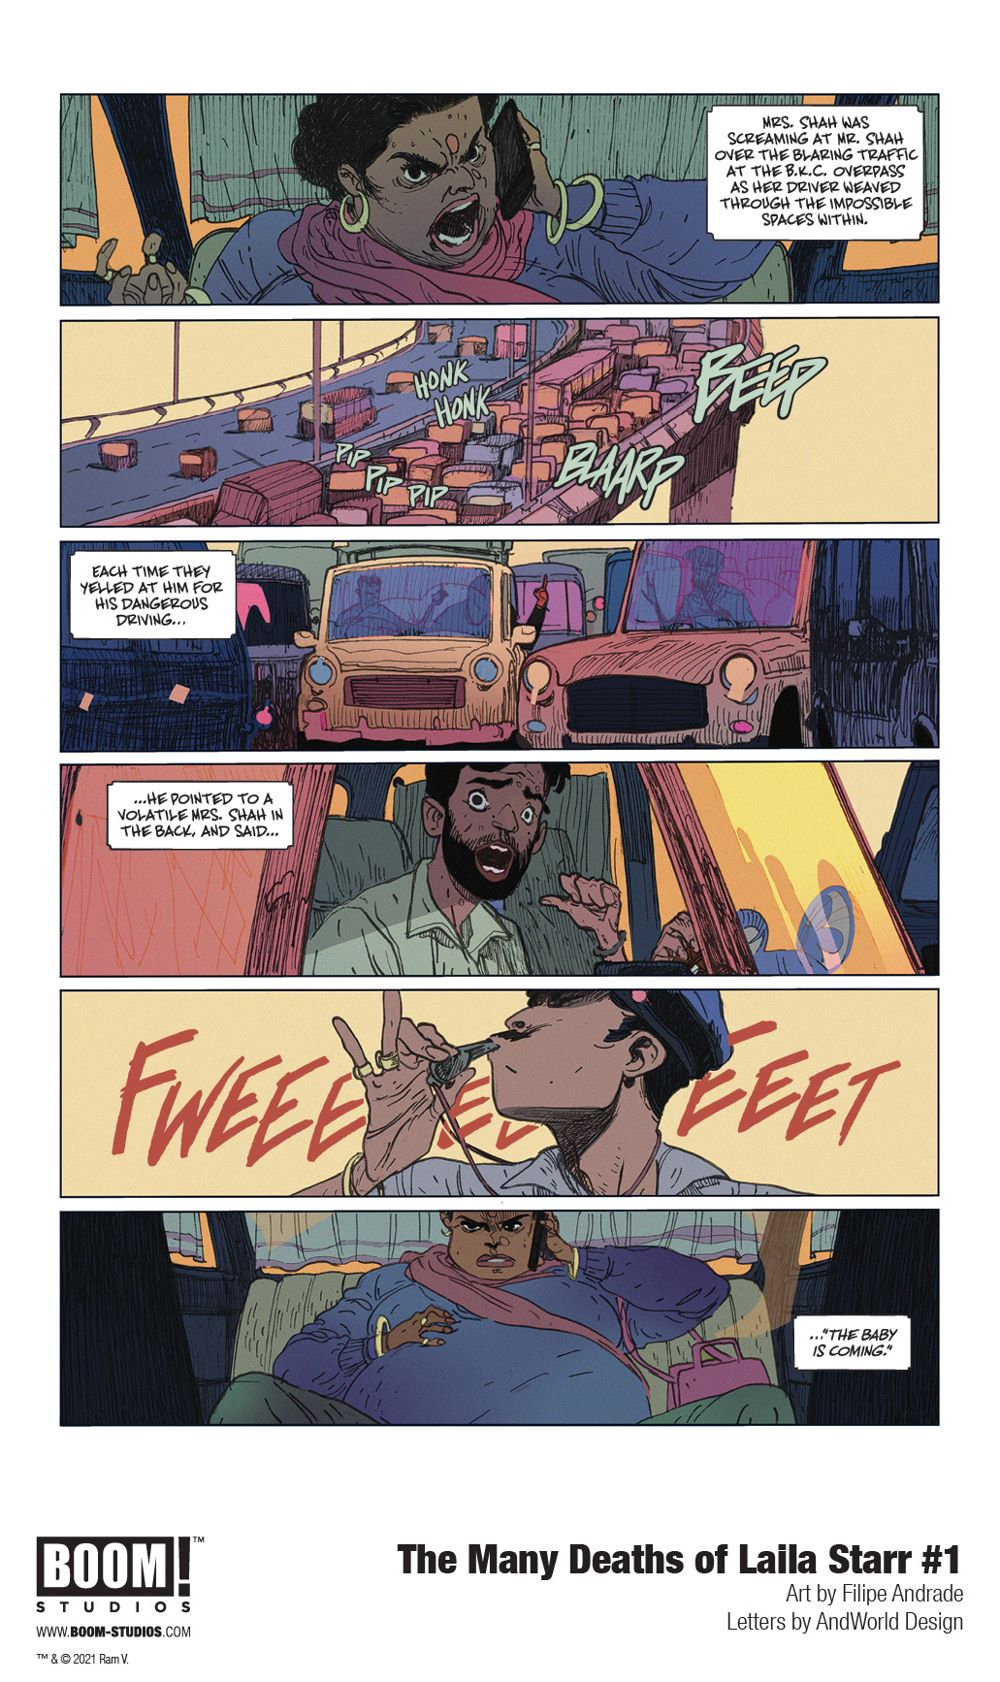 ManyDeathsLailaStarr_001_InteriorArt_002_PROMO First Look at BOOM! Studios' THE MANY DEATHS OF LAILA STARR #1